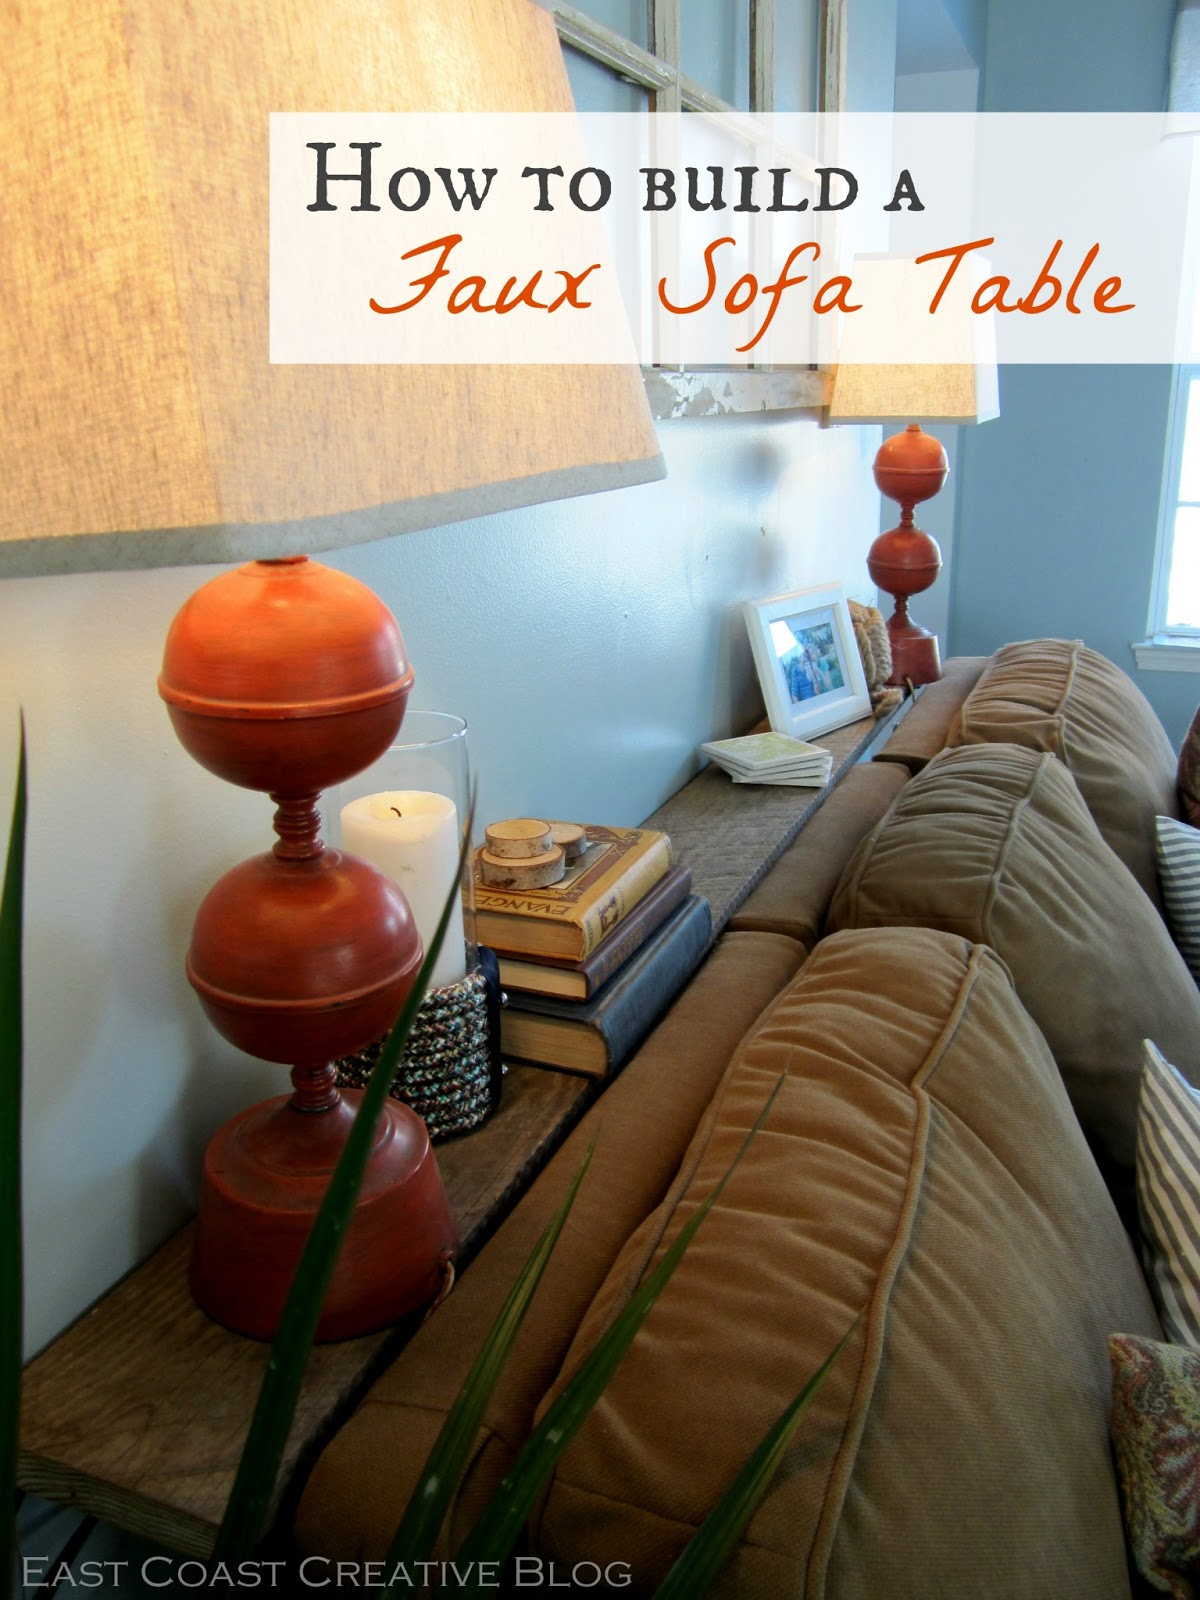 Faux Sofa Table Tutorial East Coast Creative Blog